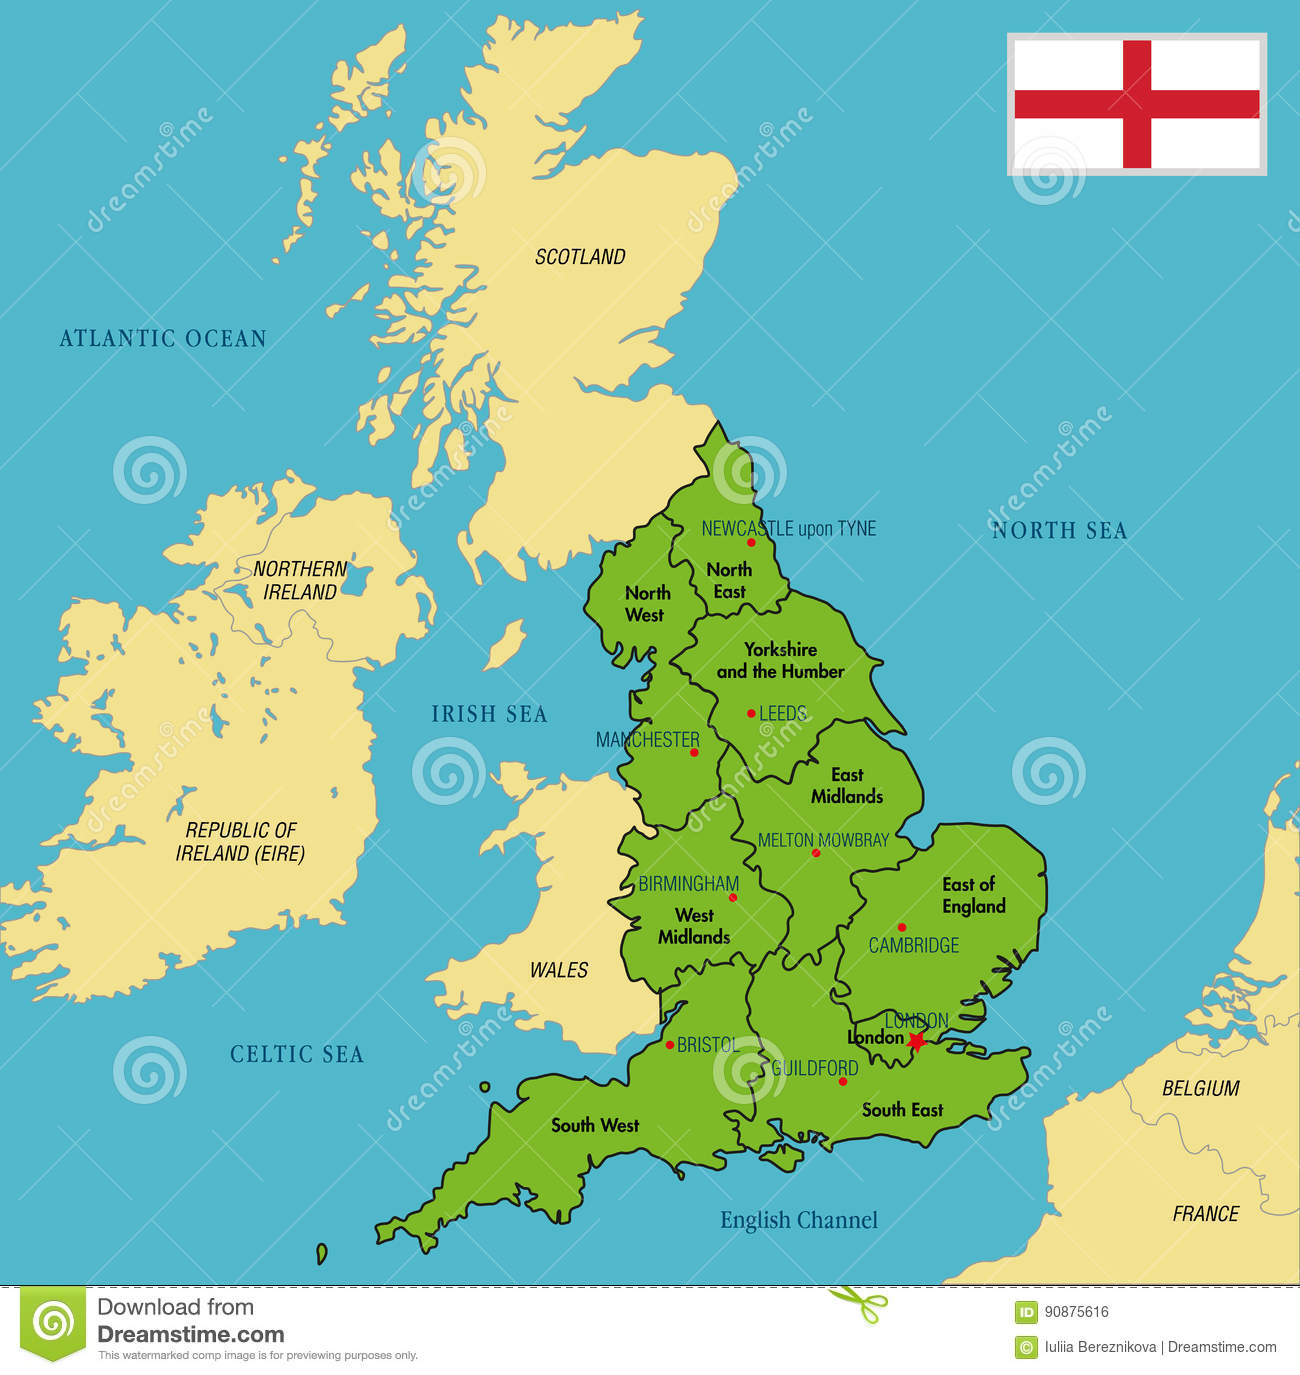 Map Of England Birmingham.Political Map Of England With Regions And Their Capitals Stock